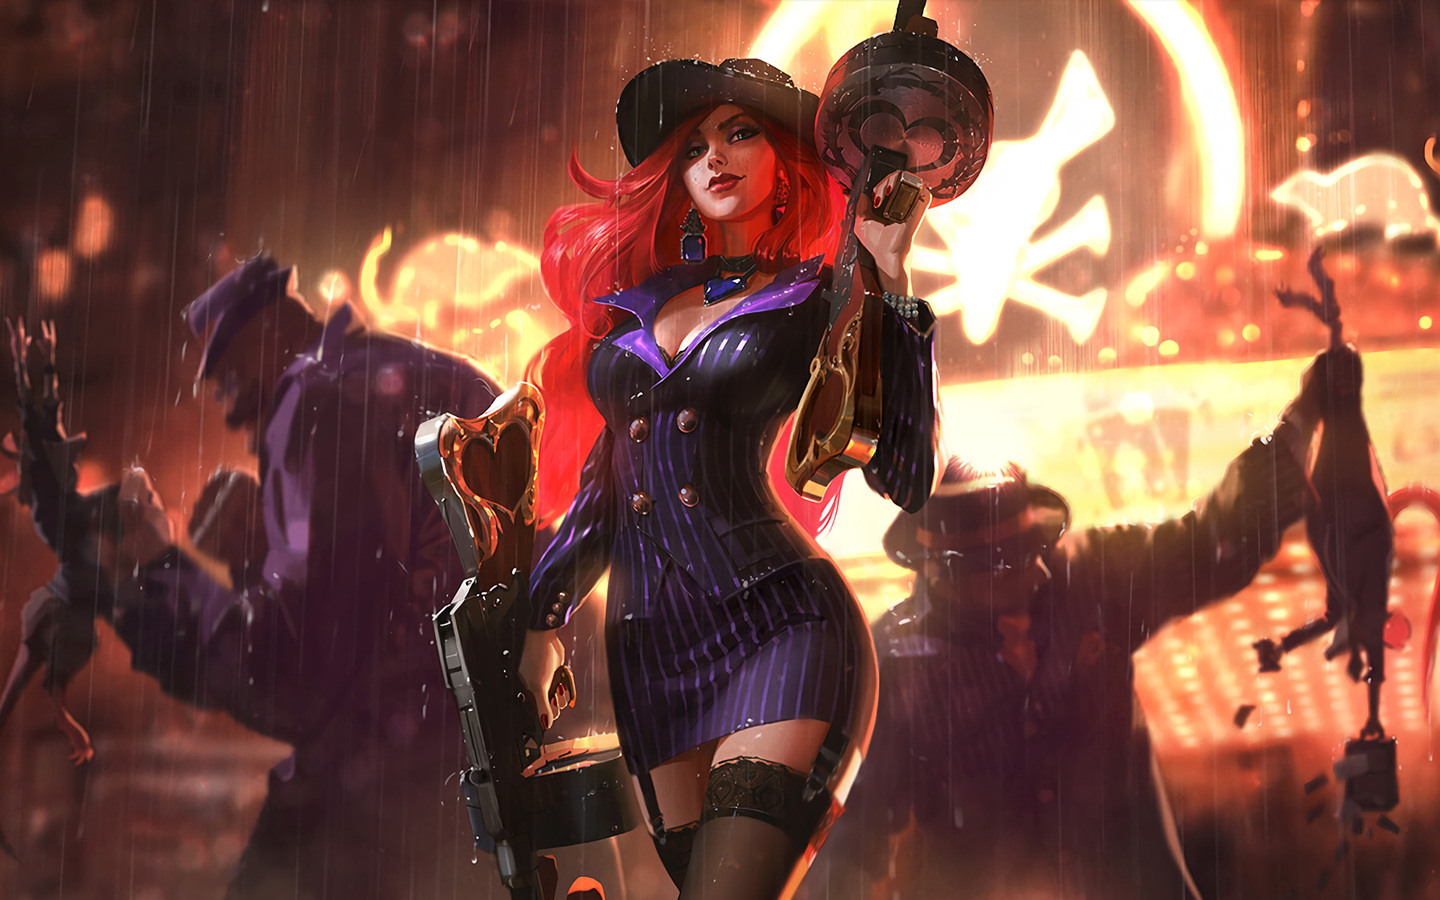 1440x900 Miss Fortune League Of Legends 1440x900 Resolution Hd 4k